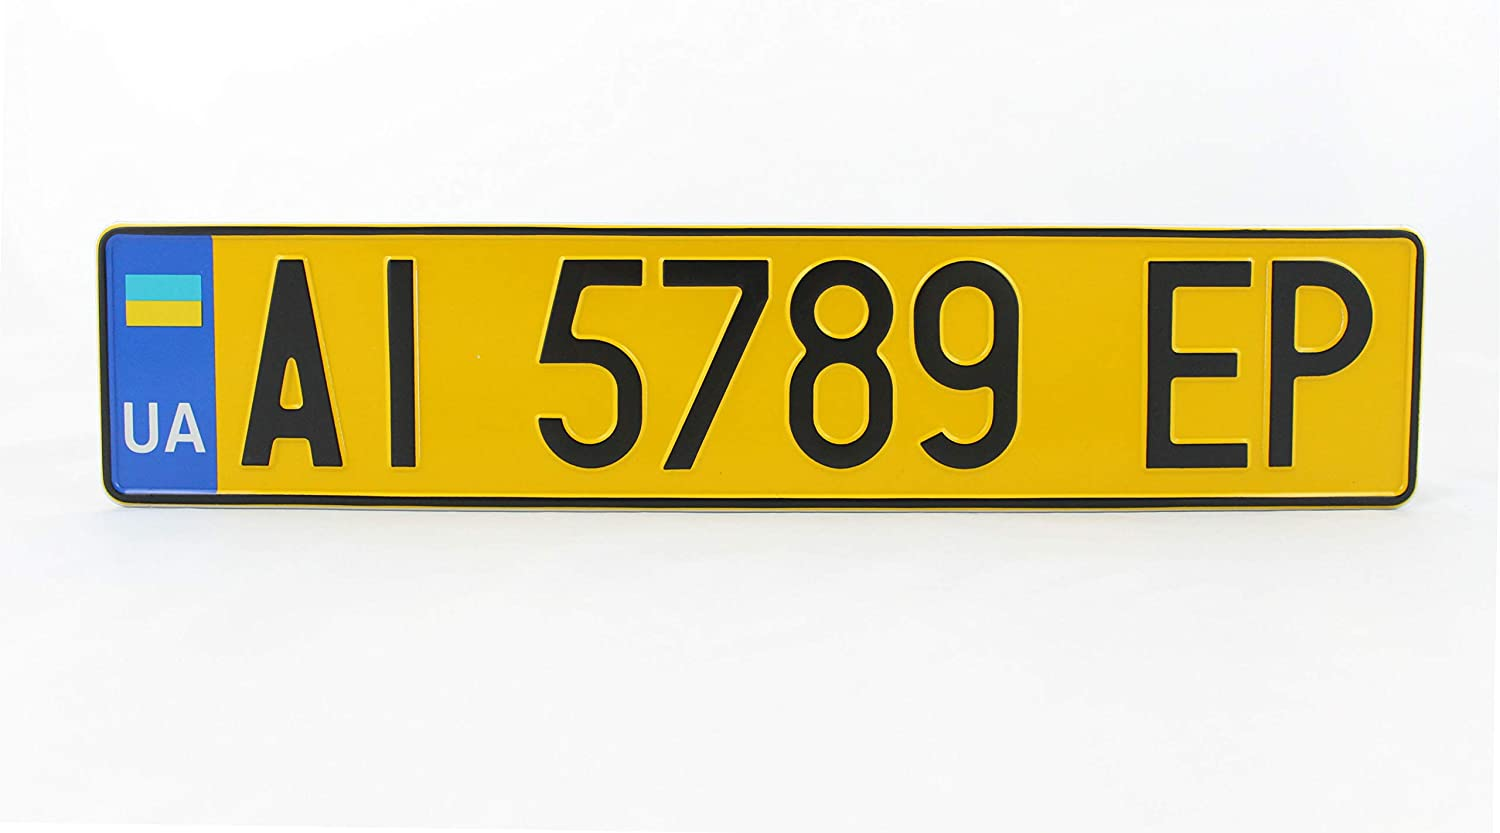 License Plates Shop Kretschmer Plaque dimmatriculation Allemande D Euro Europe Europe Plaque dimmatriculation emboss/ée Noir Mat et Blanc